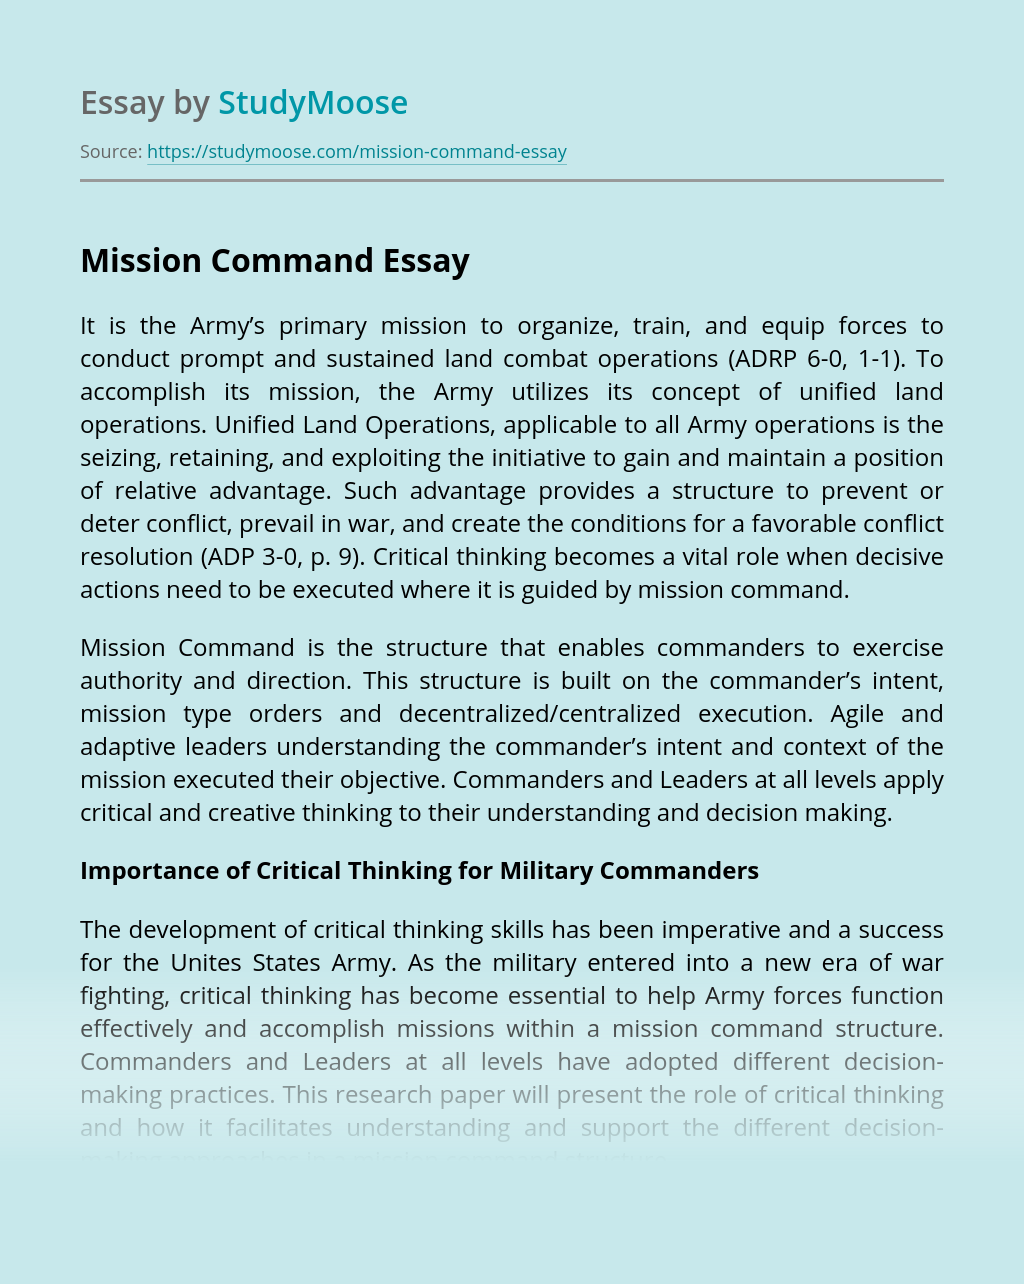 The Army's Mission